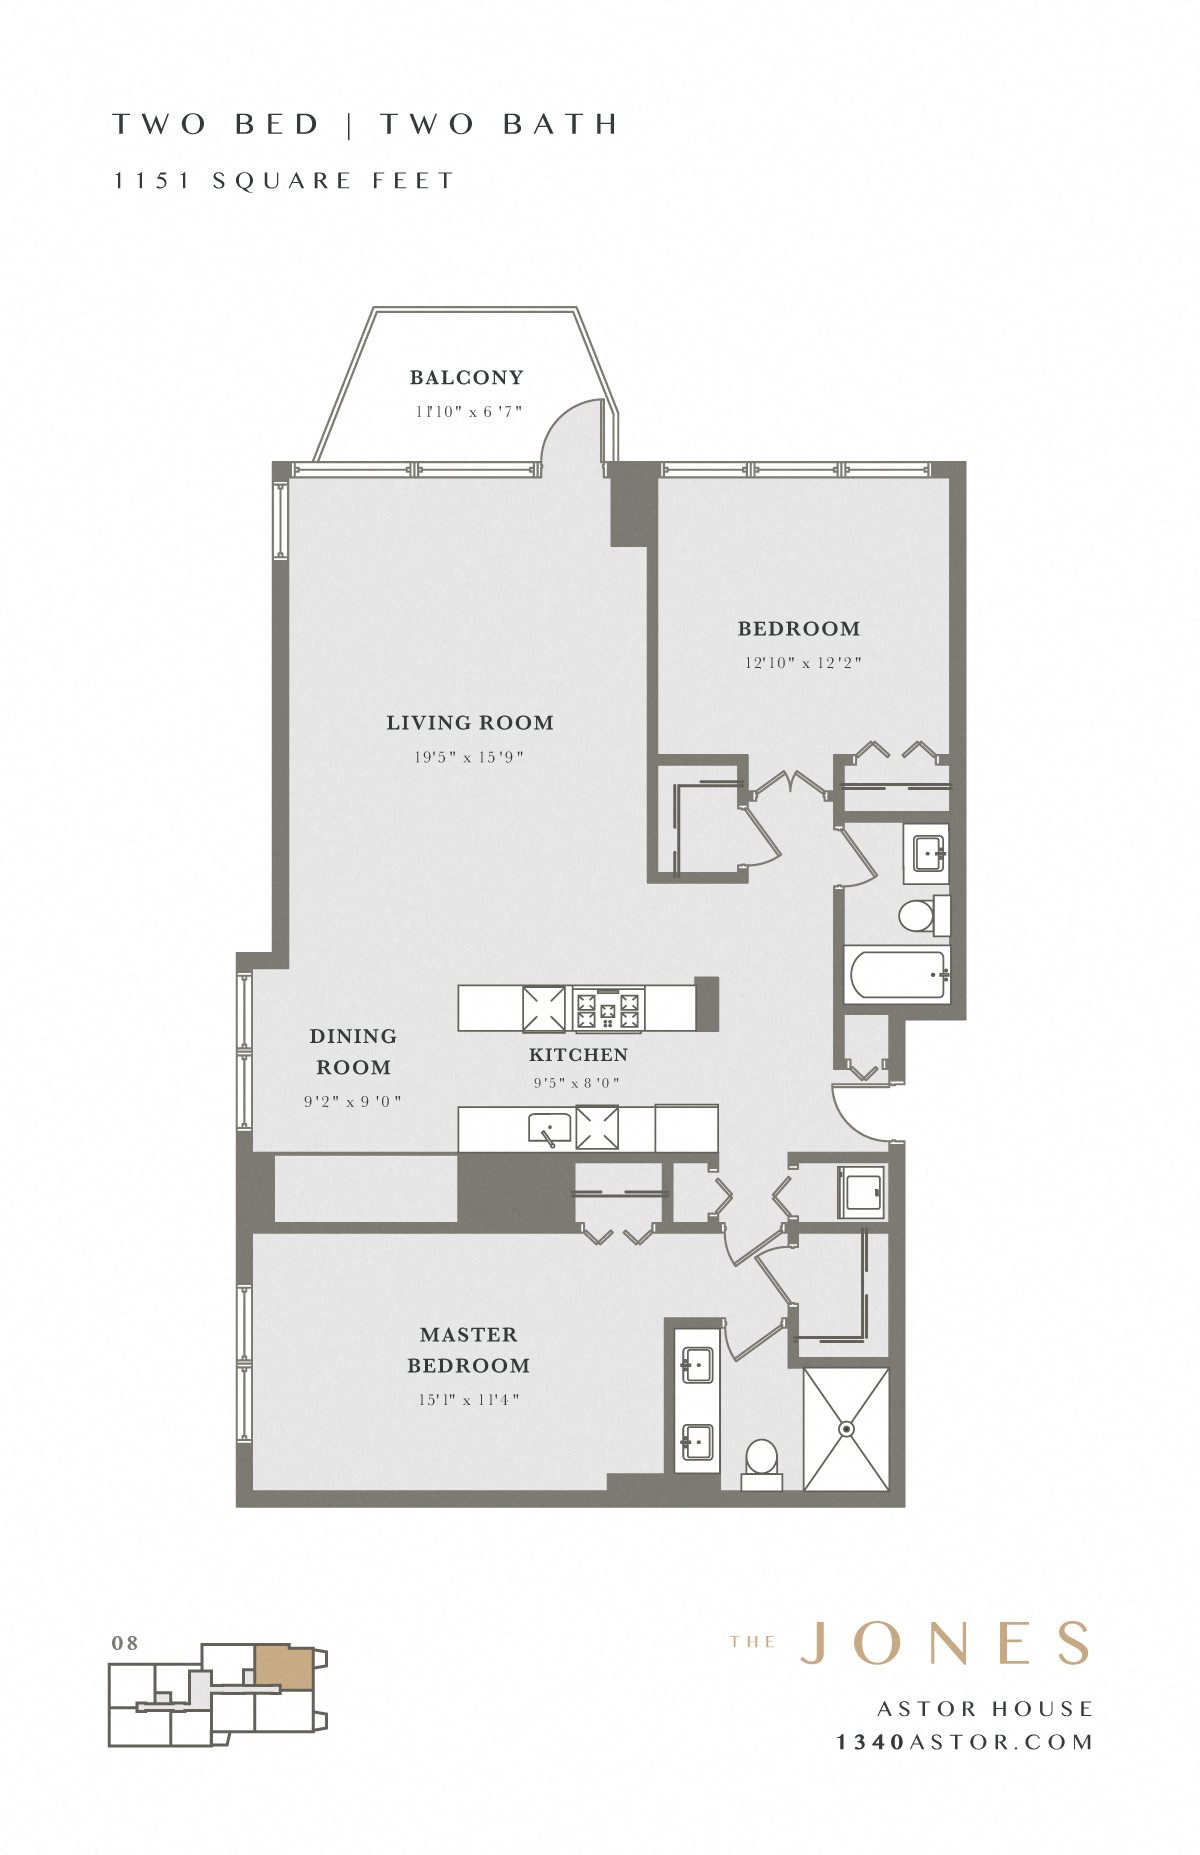 Astor House Floor Plan - Jones